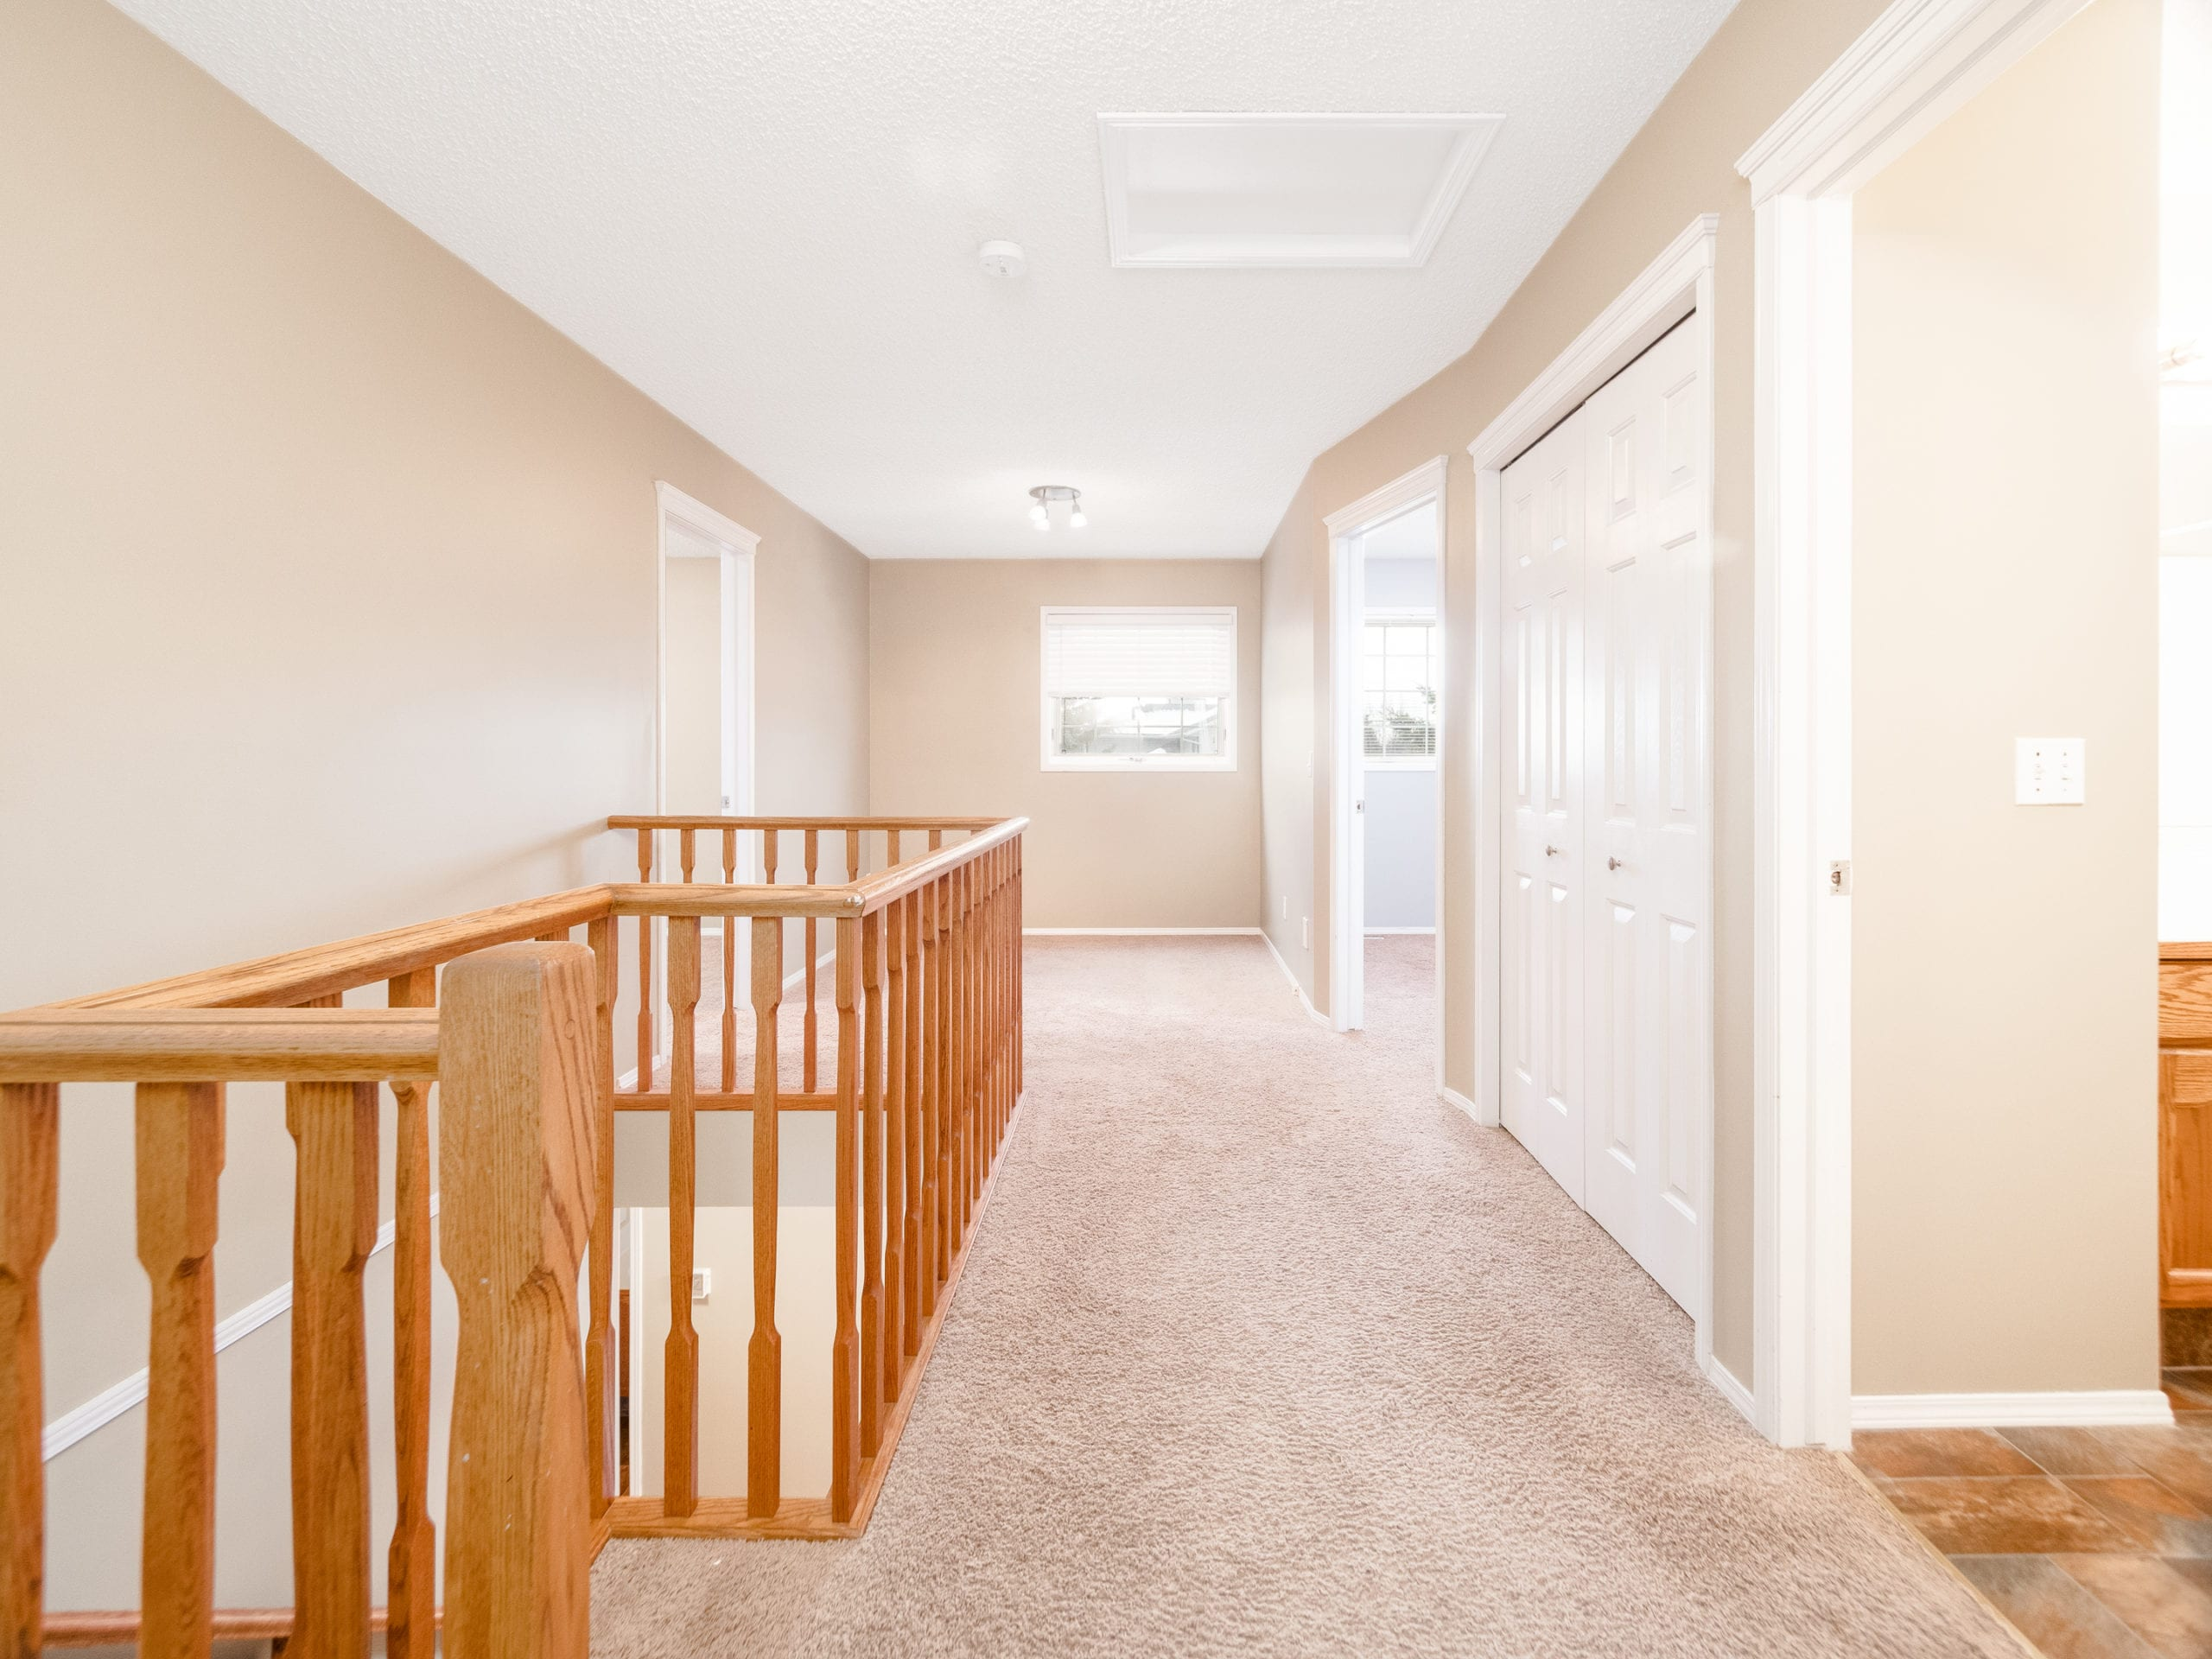 Hello Gorgeous - 143 Woodside Road NW, Airdrie AB. - Tara Molina Real Estate (23 of 54)